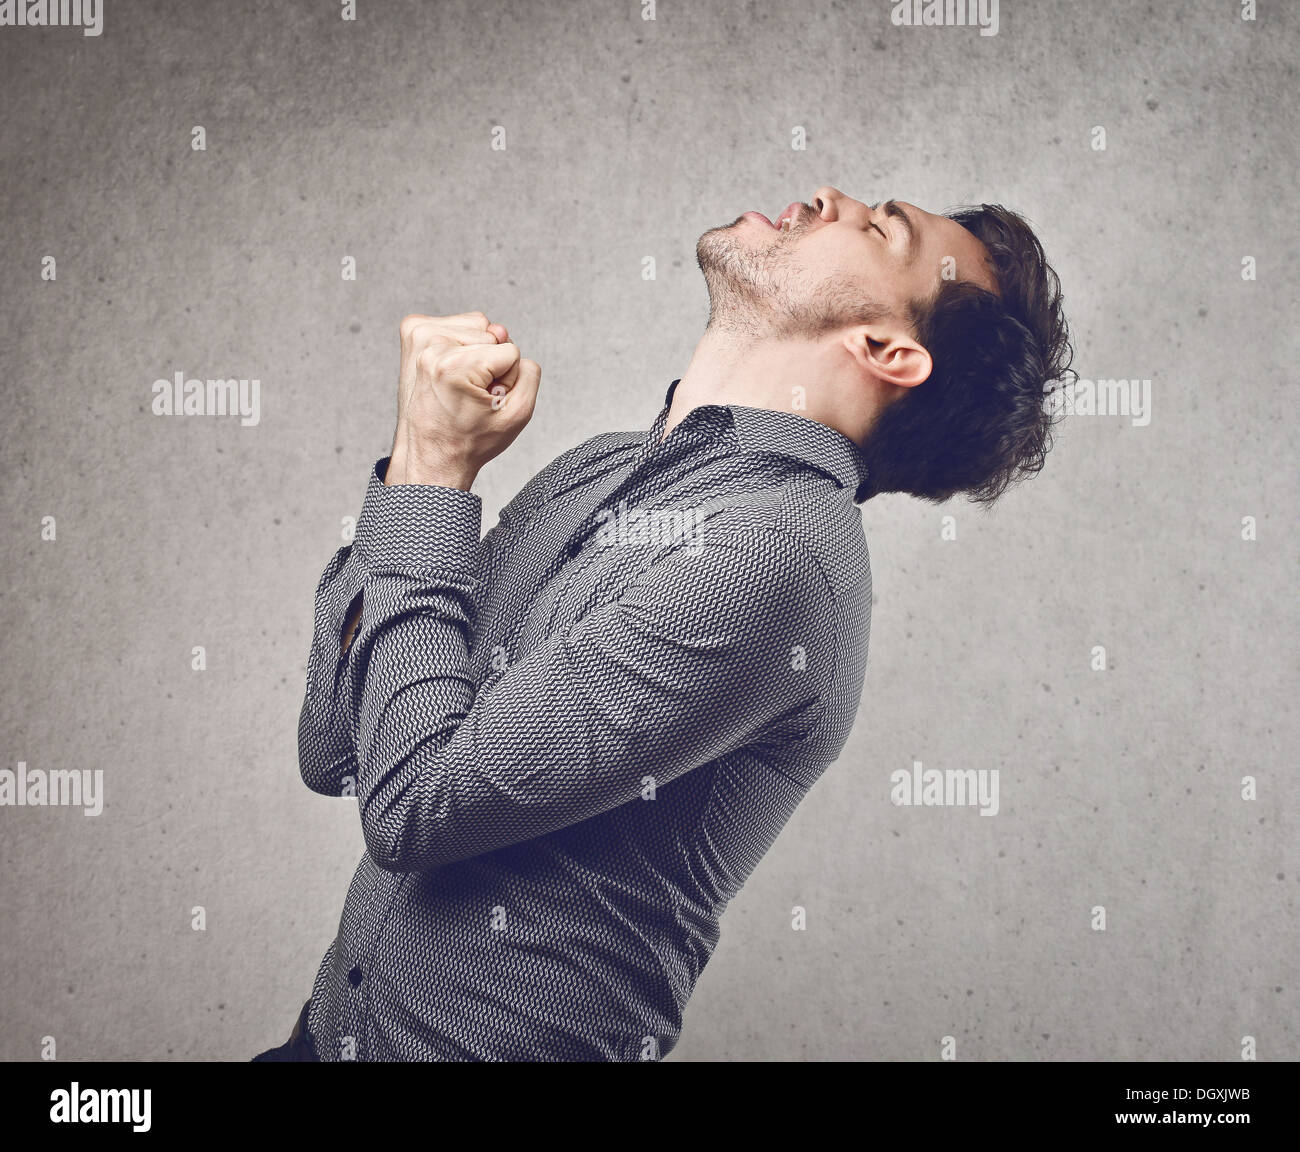 Young man in grey shirt rejoicing for his success - Stock Image